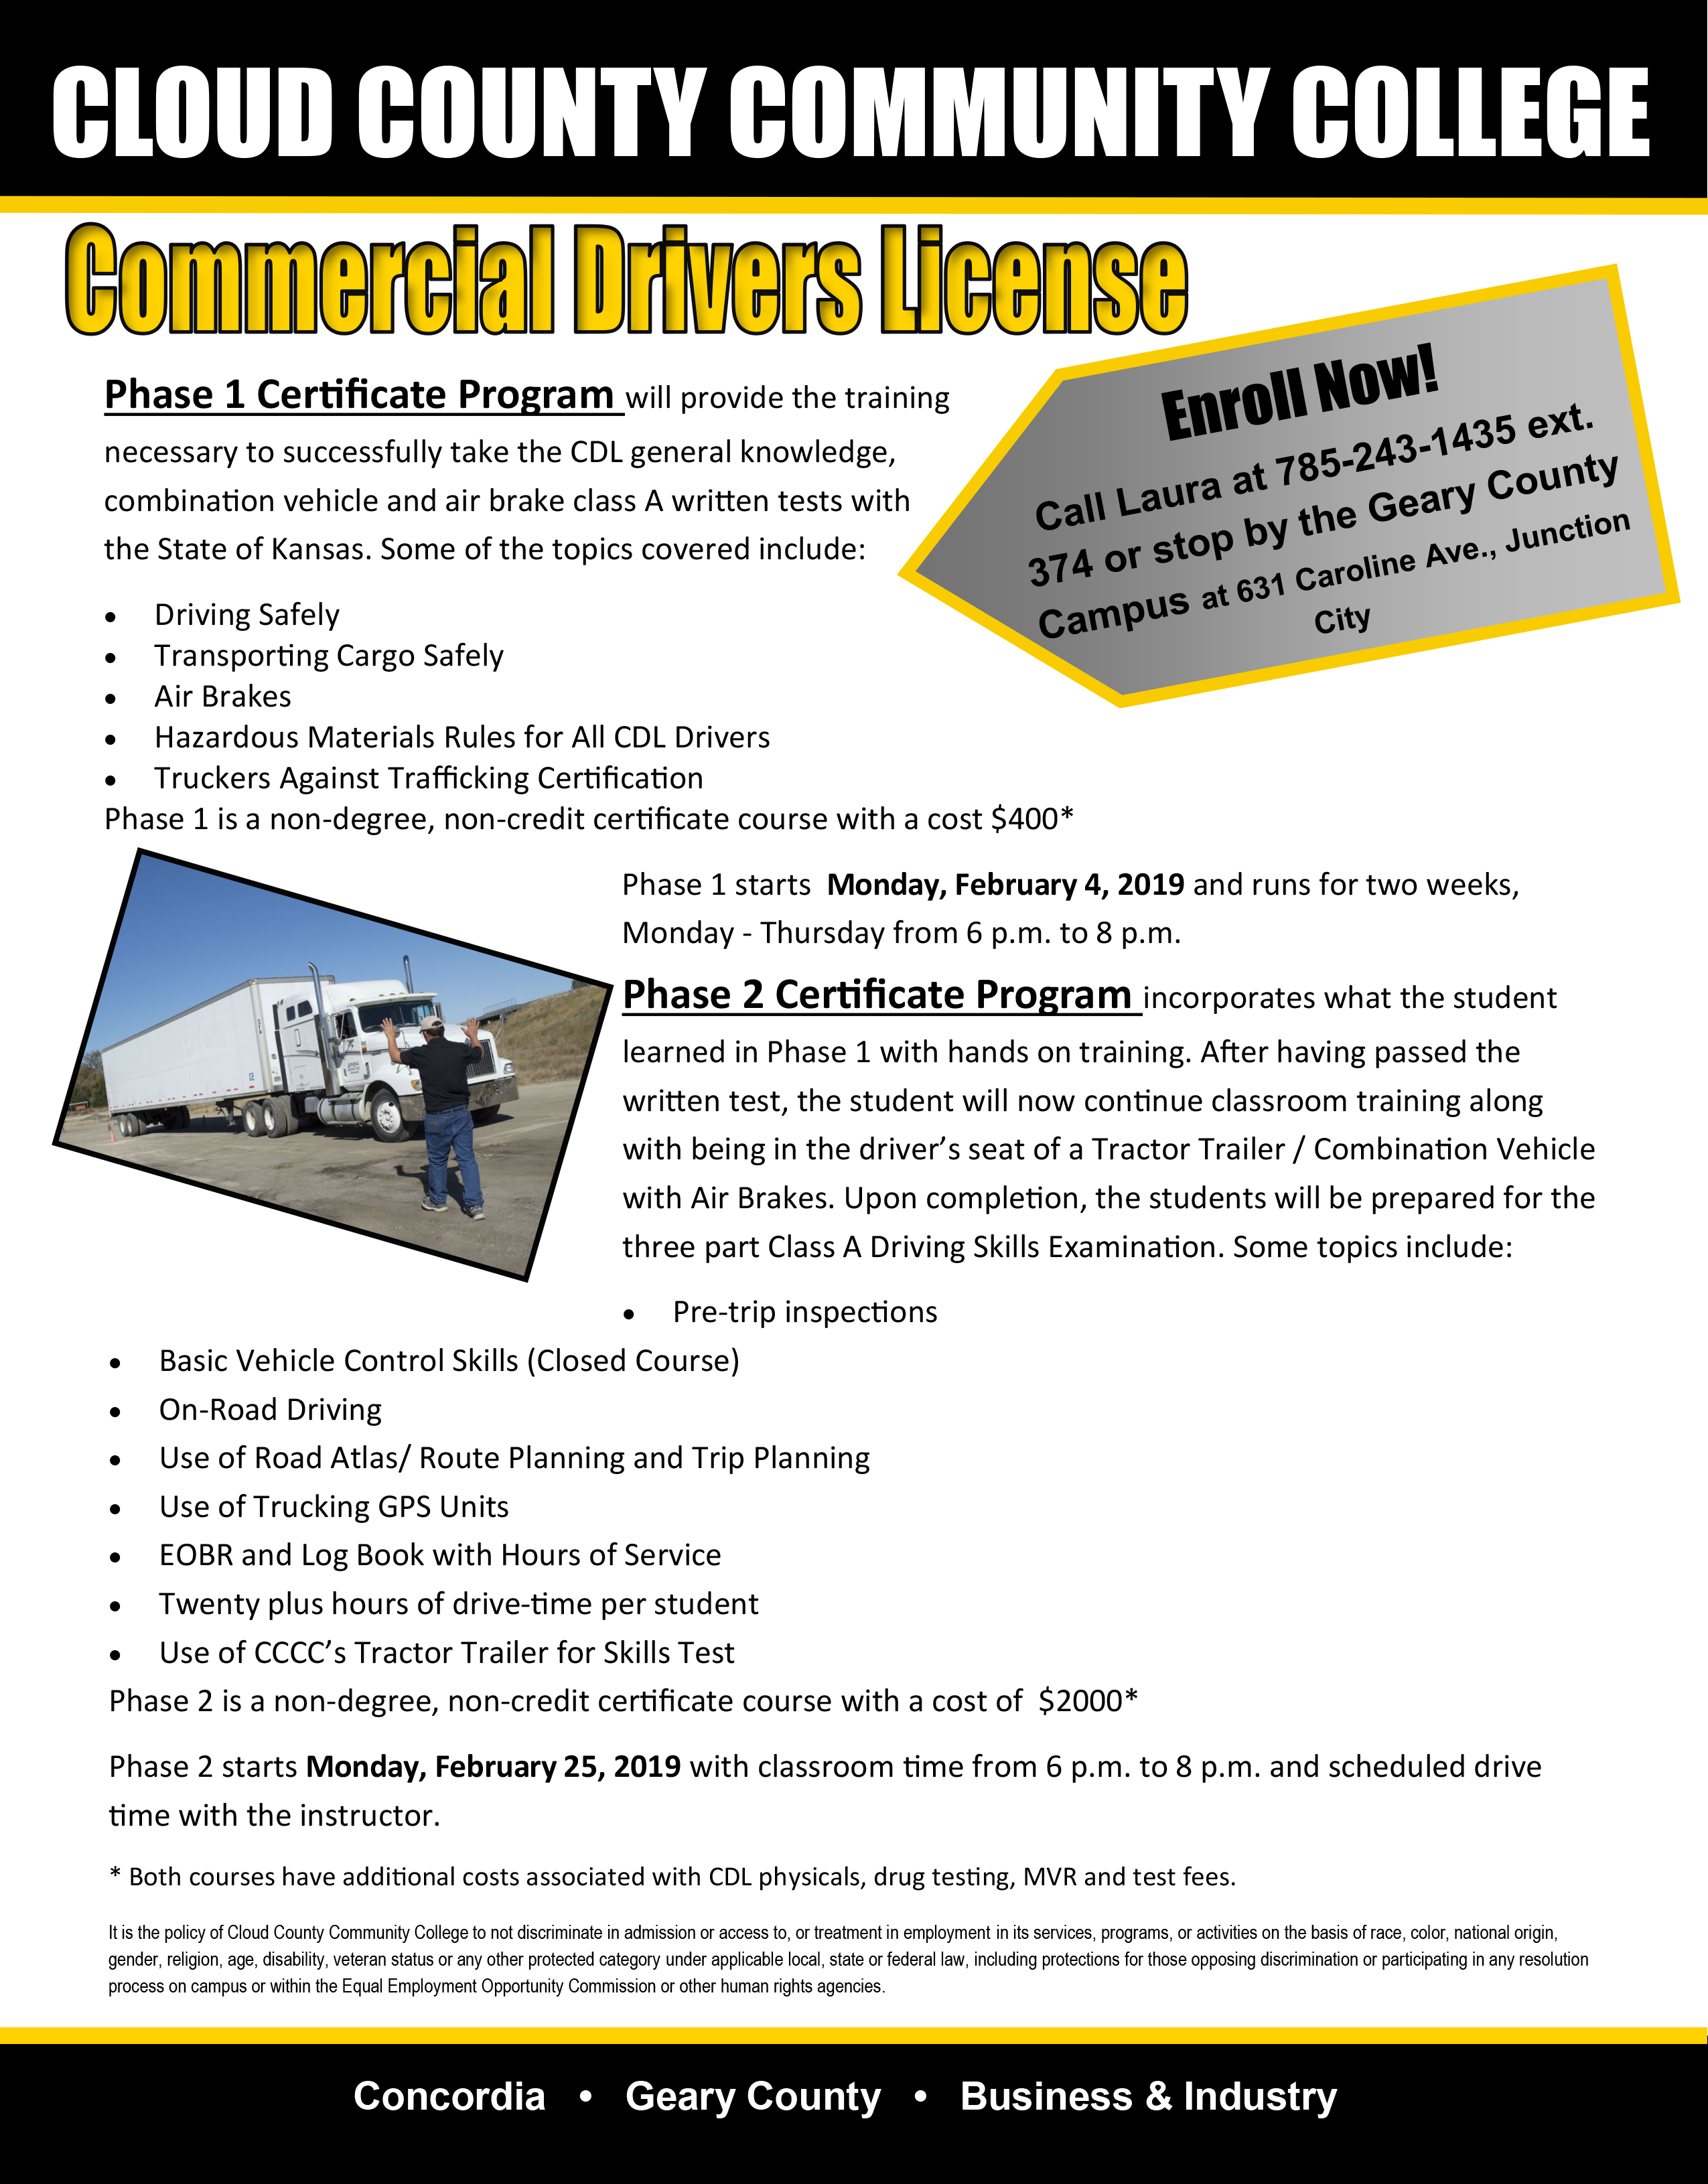 Learn more about the Winter 2019 CDL course